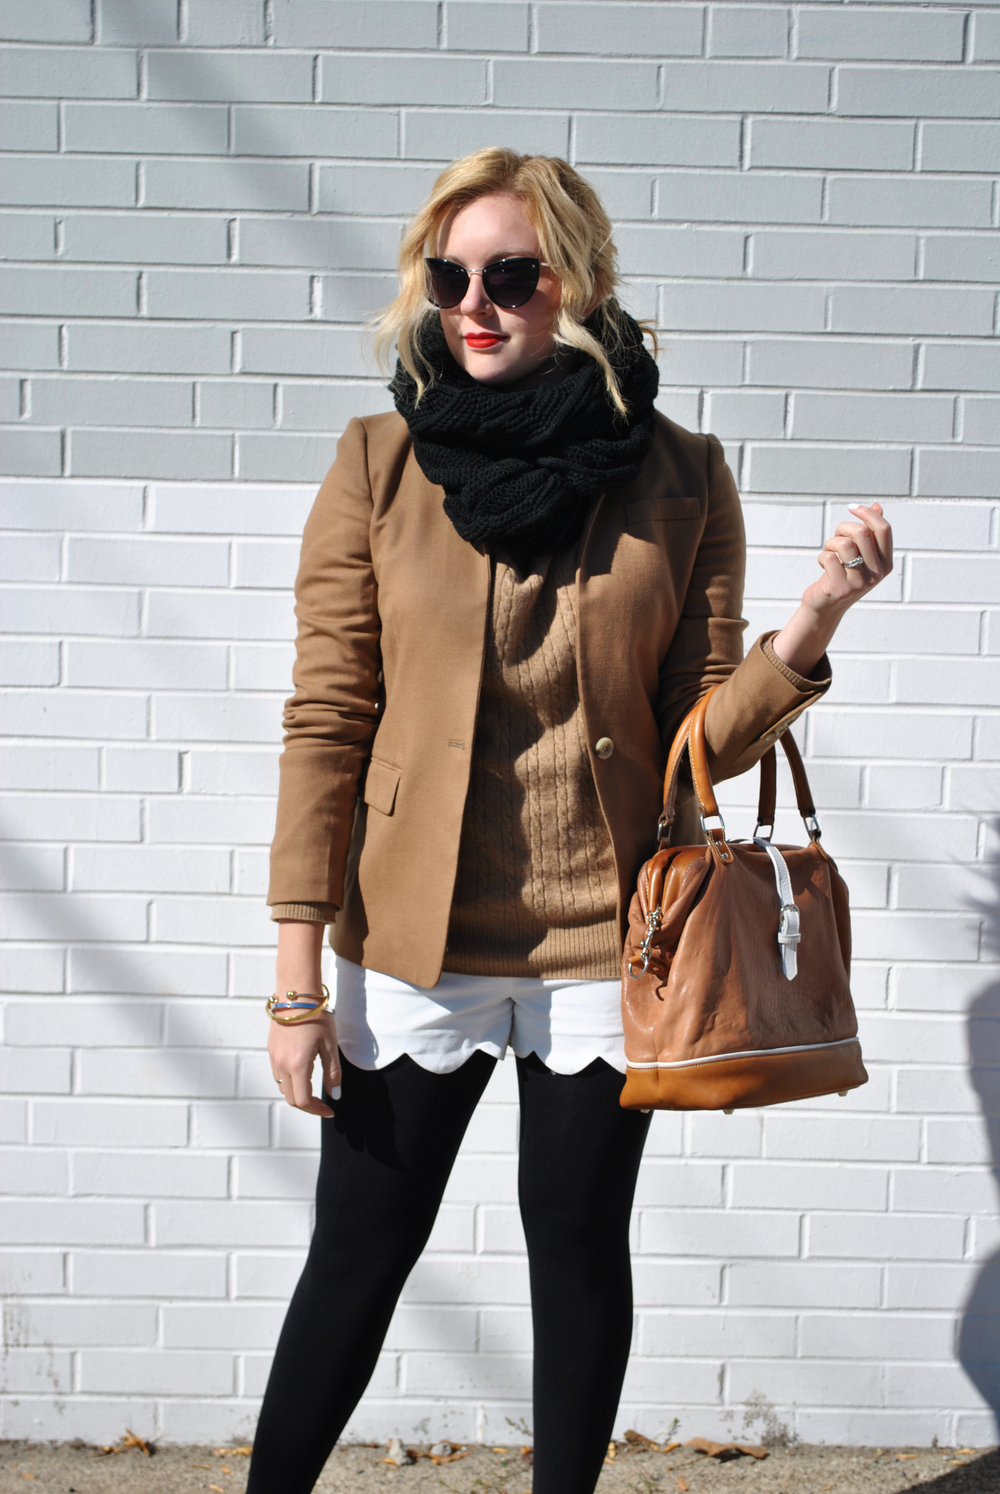 thoughtfulwish | black and tan // preppy outfit // indian summer outfit // fall outfit // fashion // camel jacket // camel sweater // white shorts // shorts for fall // jcrew // kate spade // flea bag